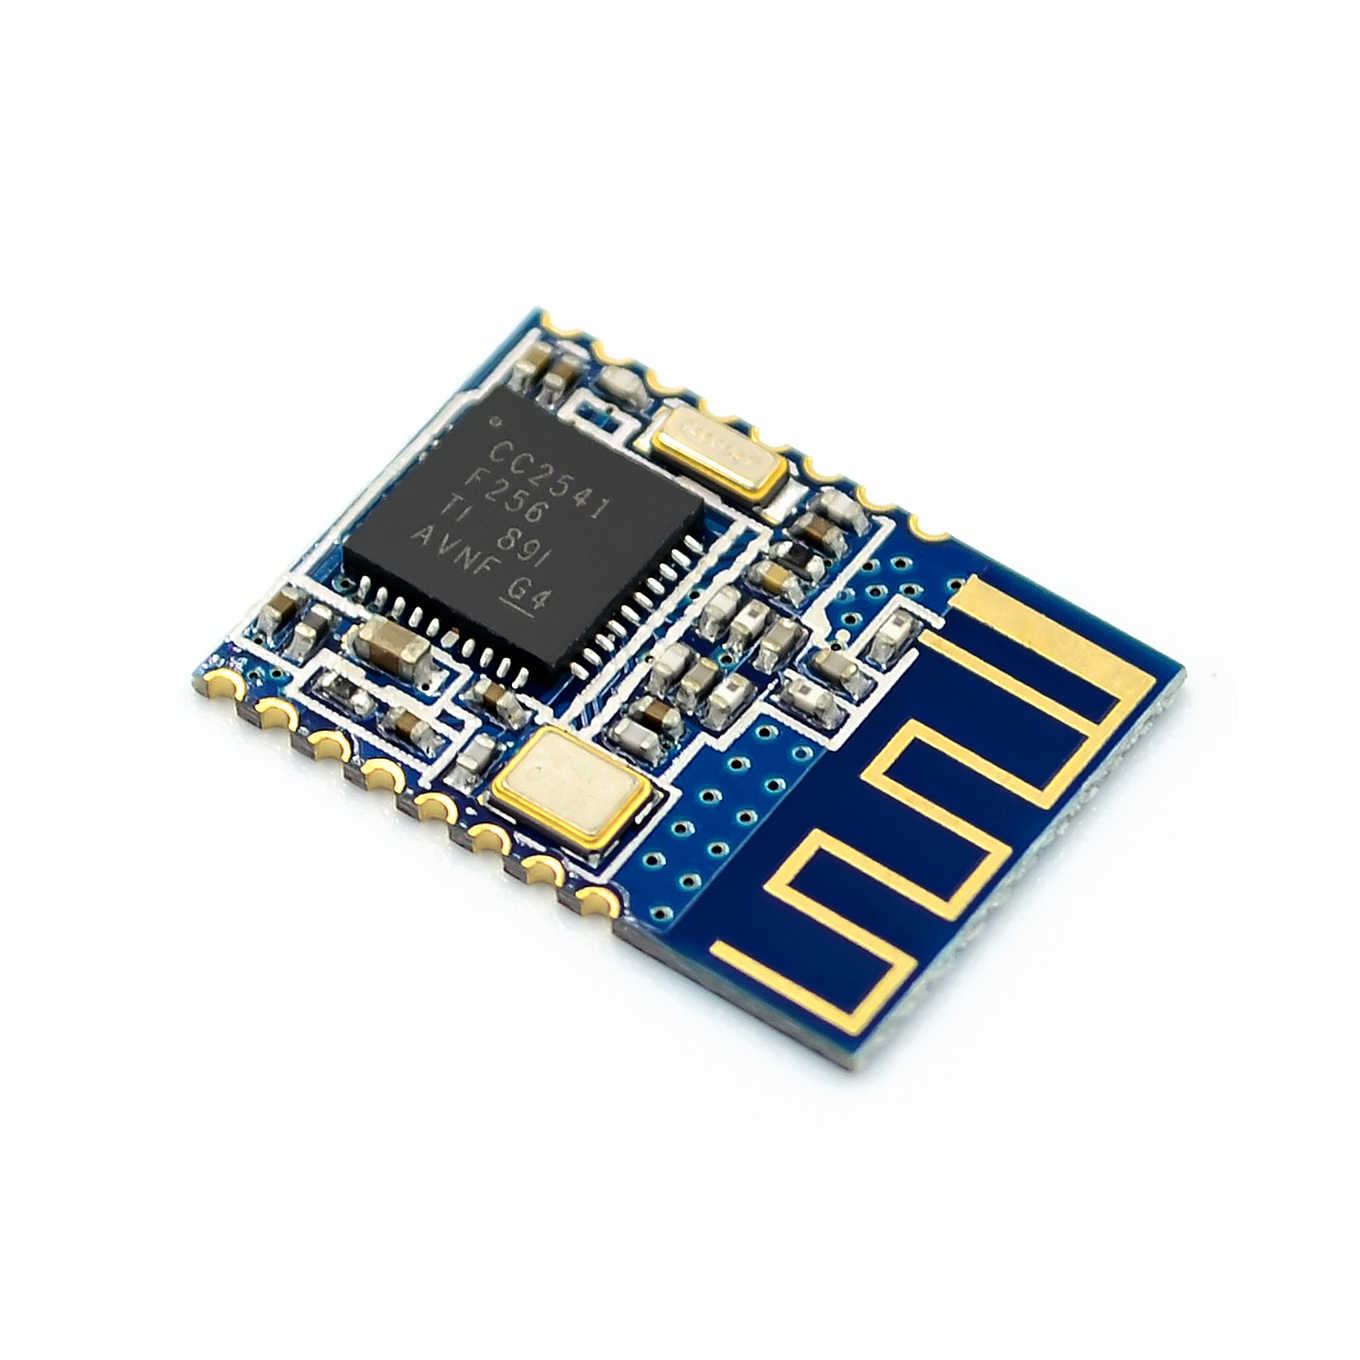 2014 Latest Bluetooth 4 0 BLE TI CC2540 module low power HM-11 bluetooth  serial port module fit for IOS 8